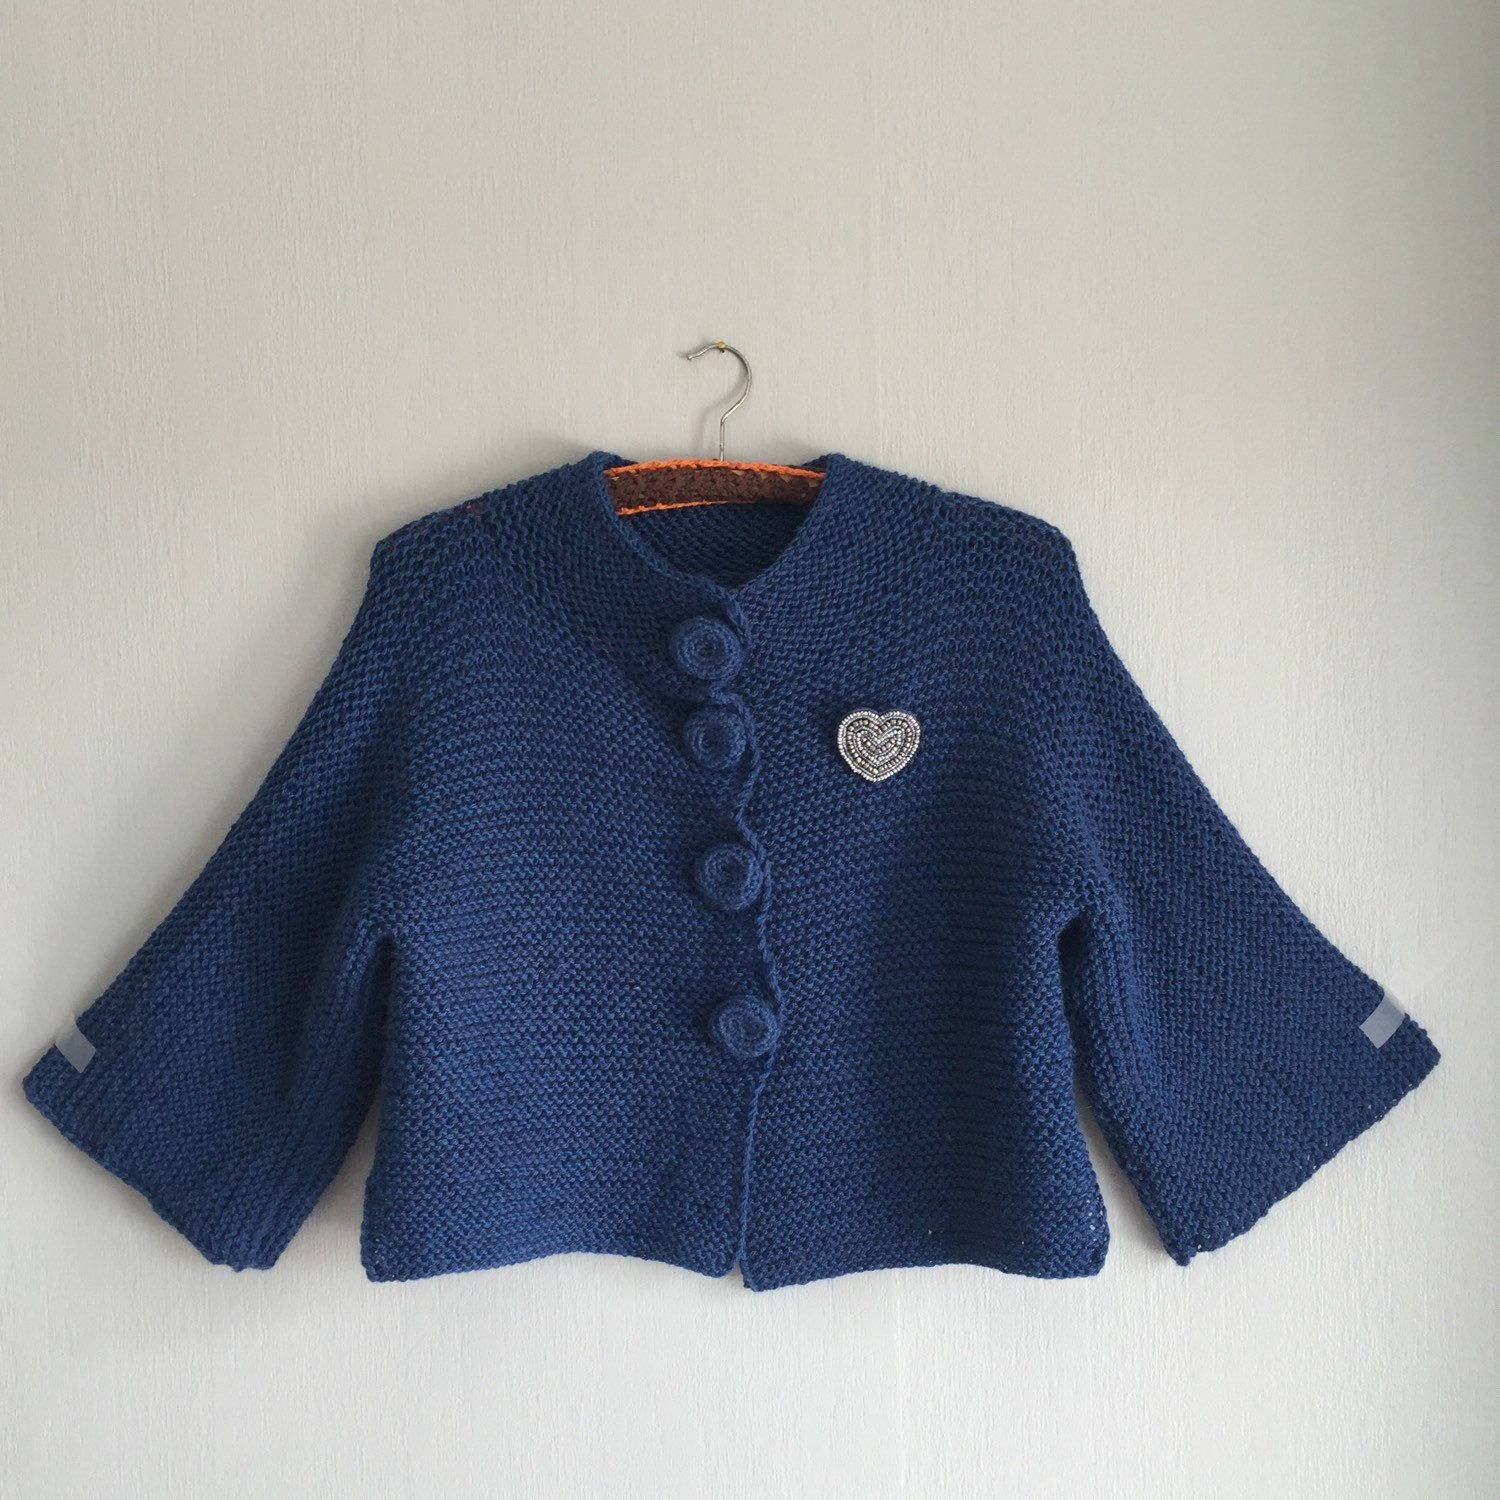 Cardigan M, Knitted Cardigan, Shrug, Knit Cardigan, Shrug Bolero ...